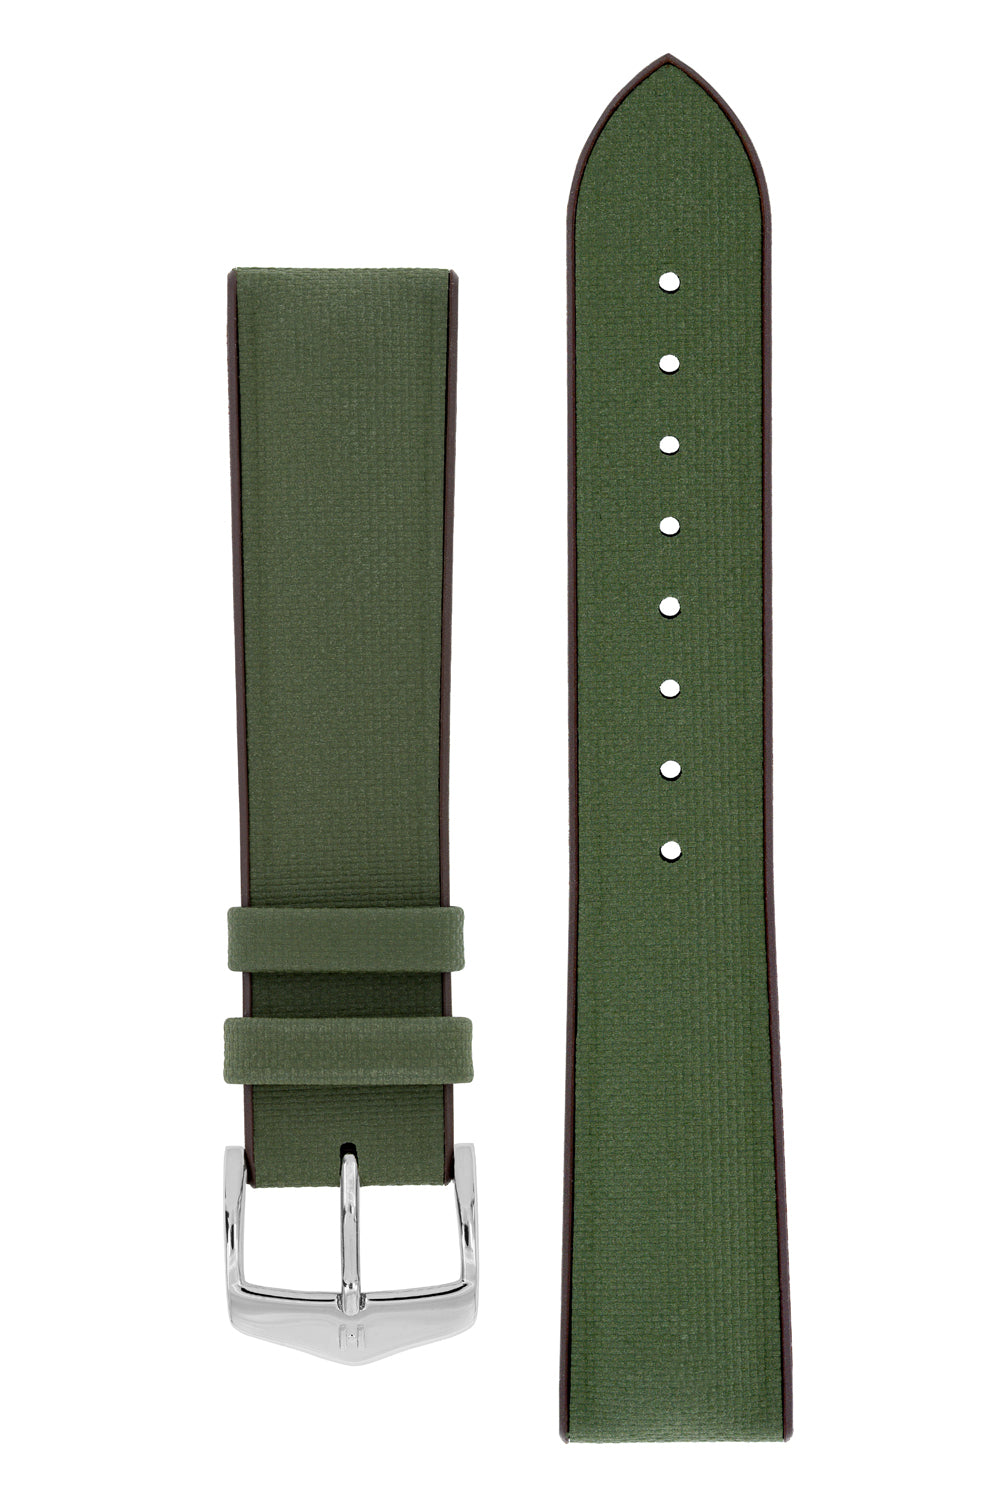 Hirsch ARNE Sailcloth Effect Performance Watch Strap in GREEN/BROWN